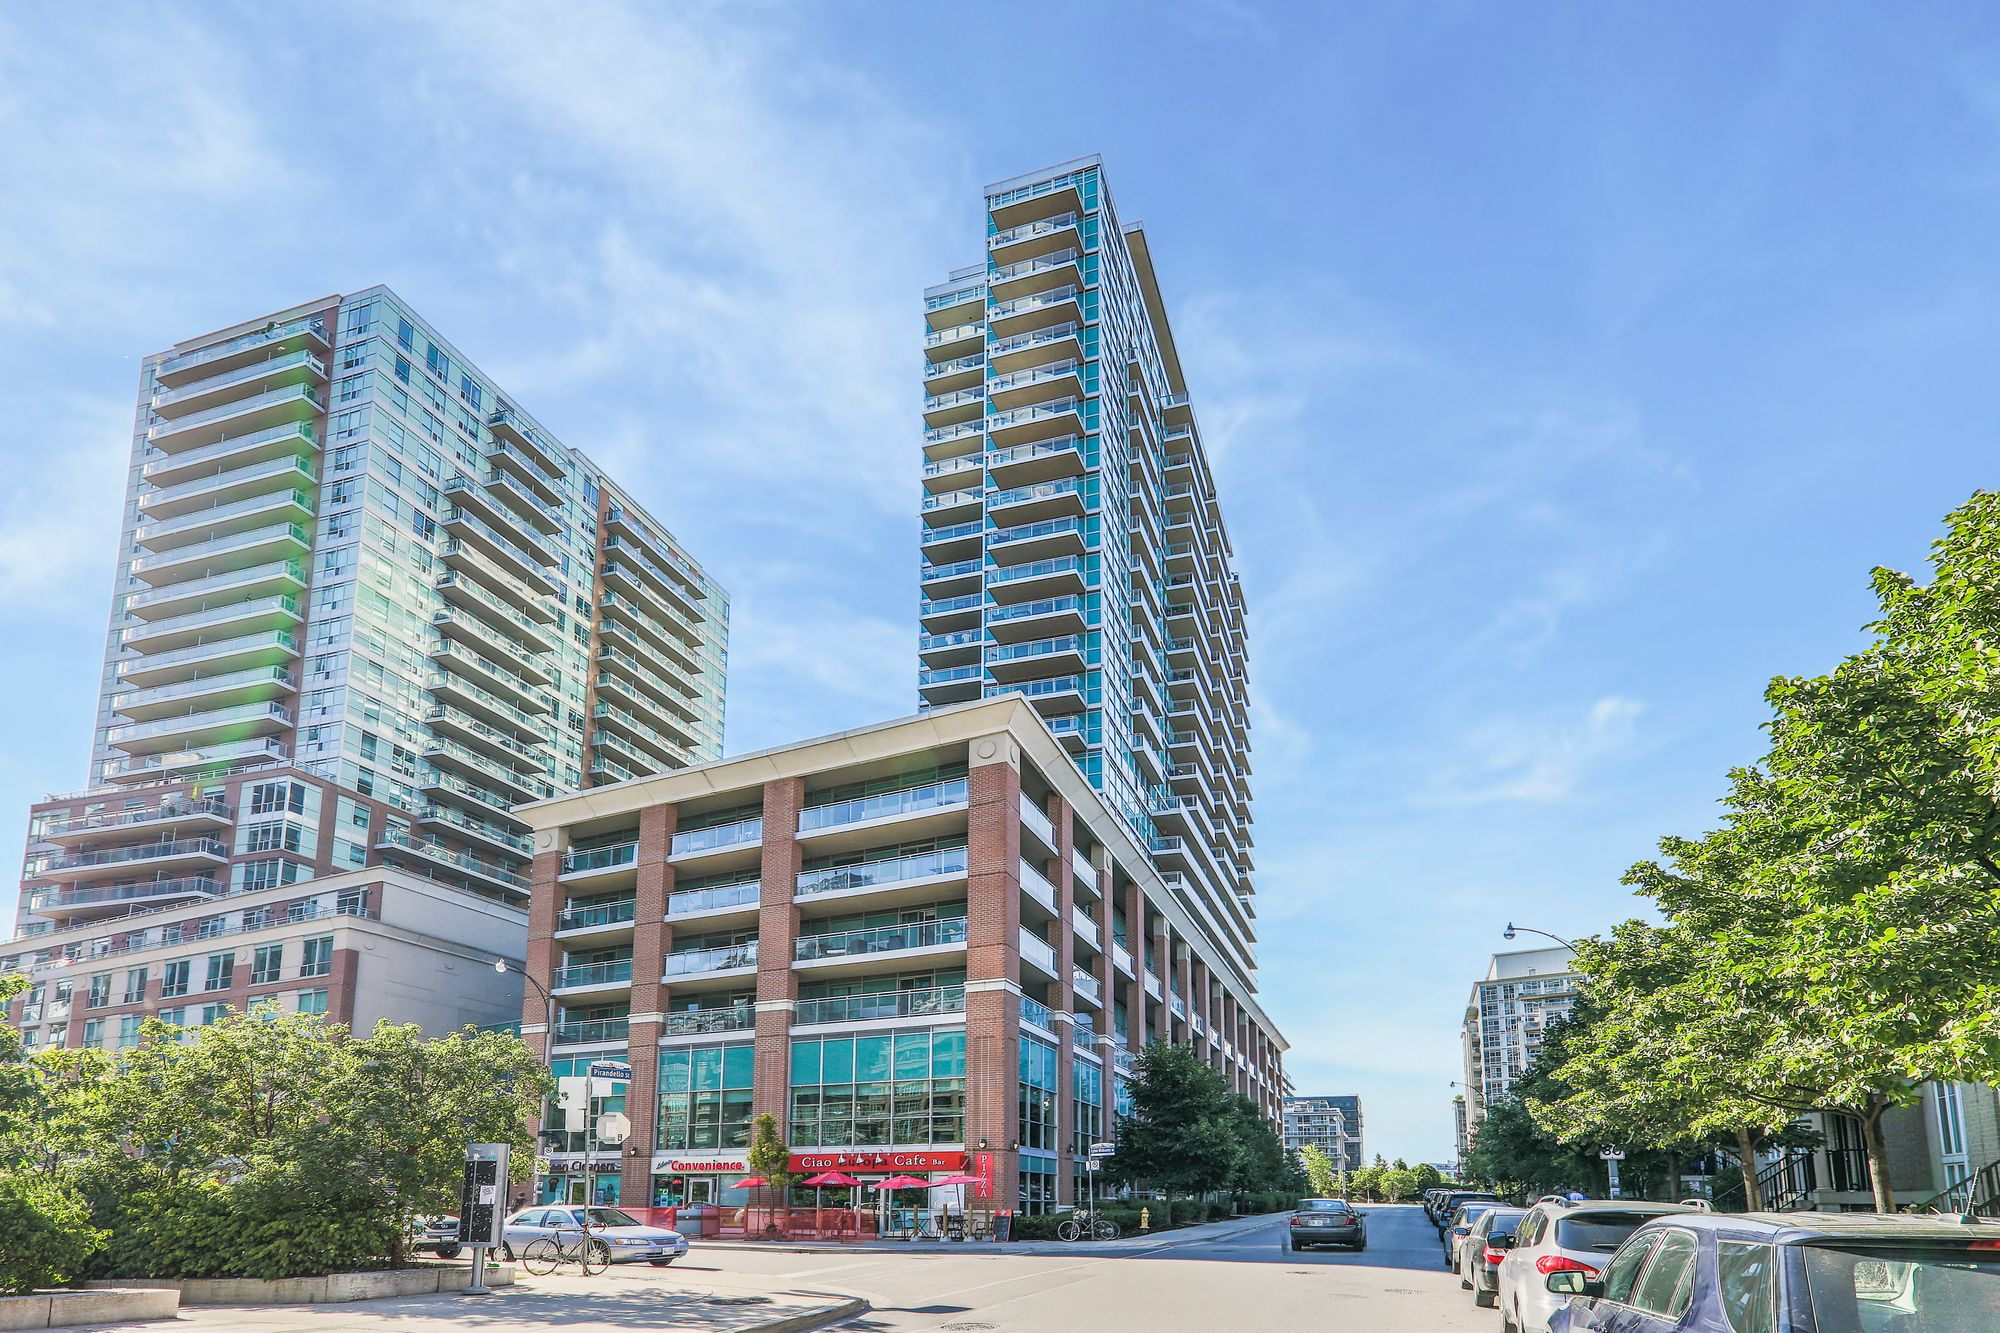 80 Western Battery Rd. This condo at Zip Condos is located in  West End, Toronto - image #1 of 8 by Strata.ca